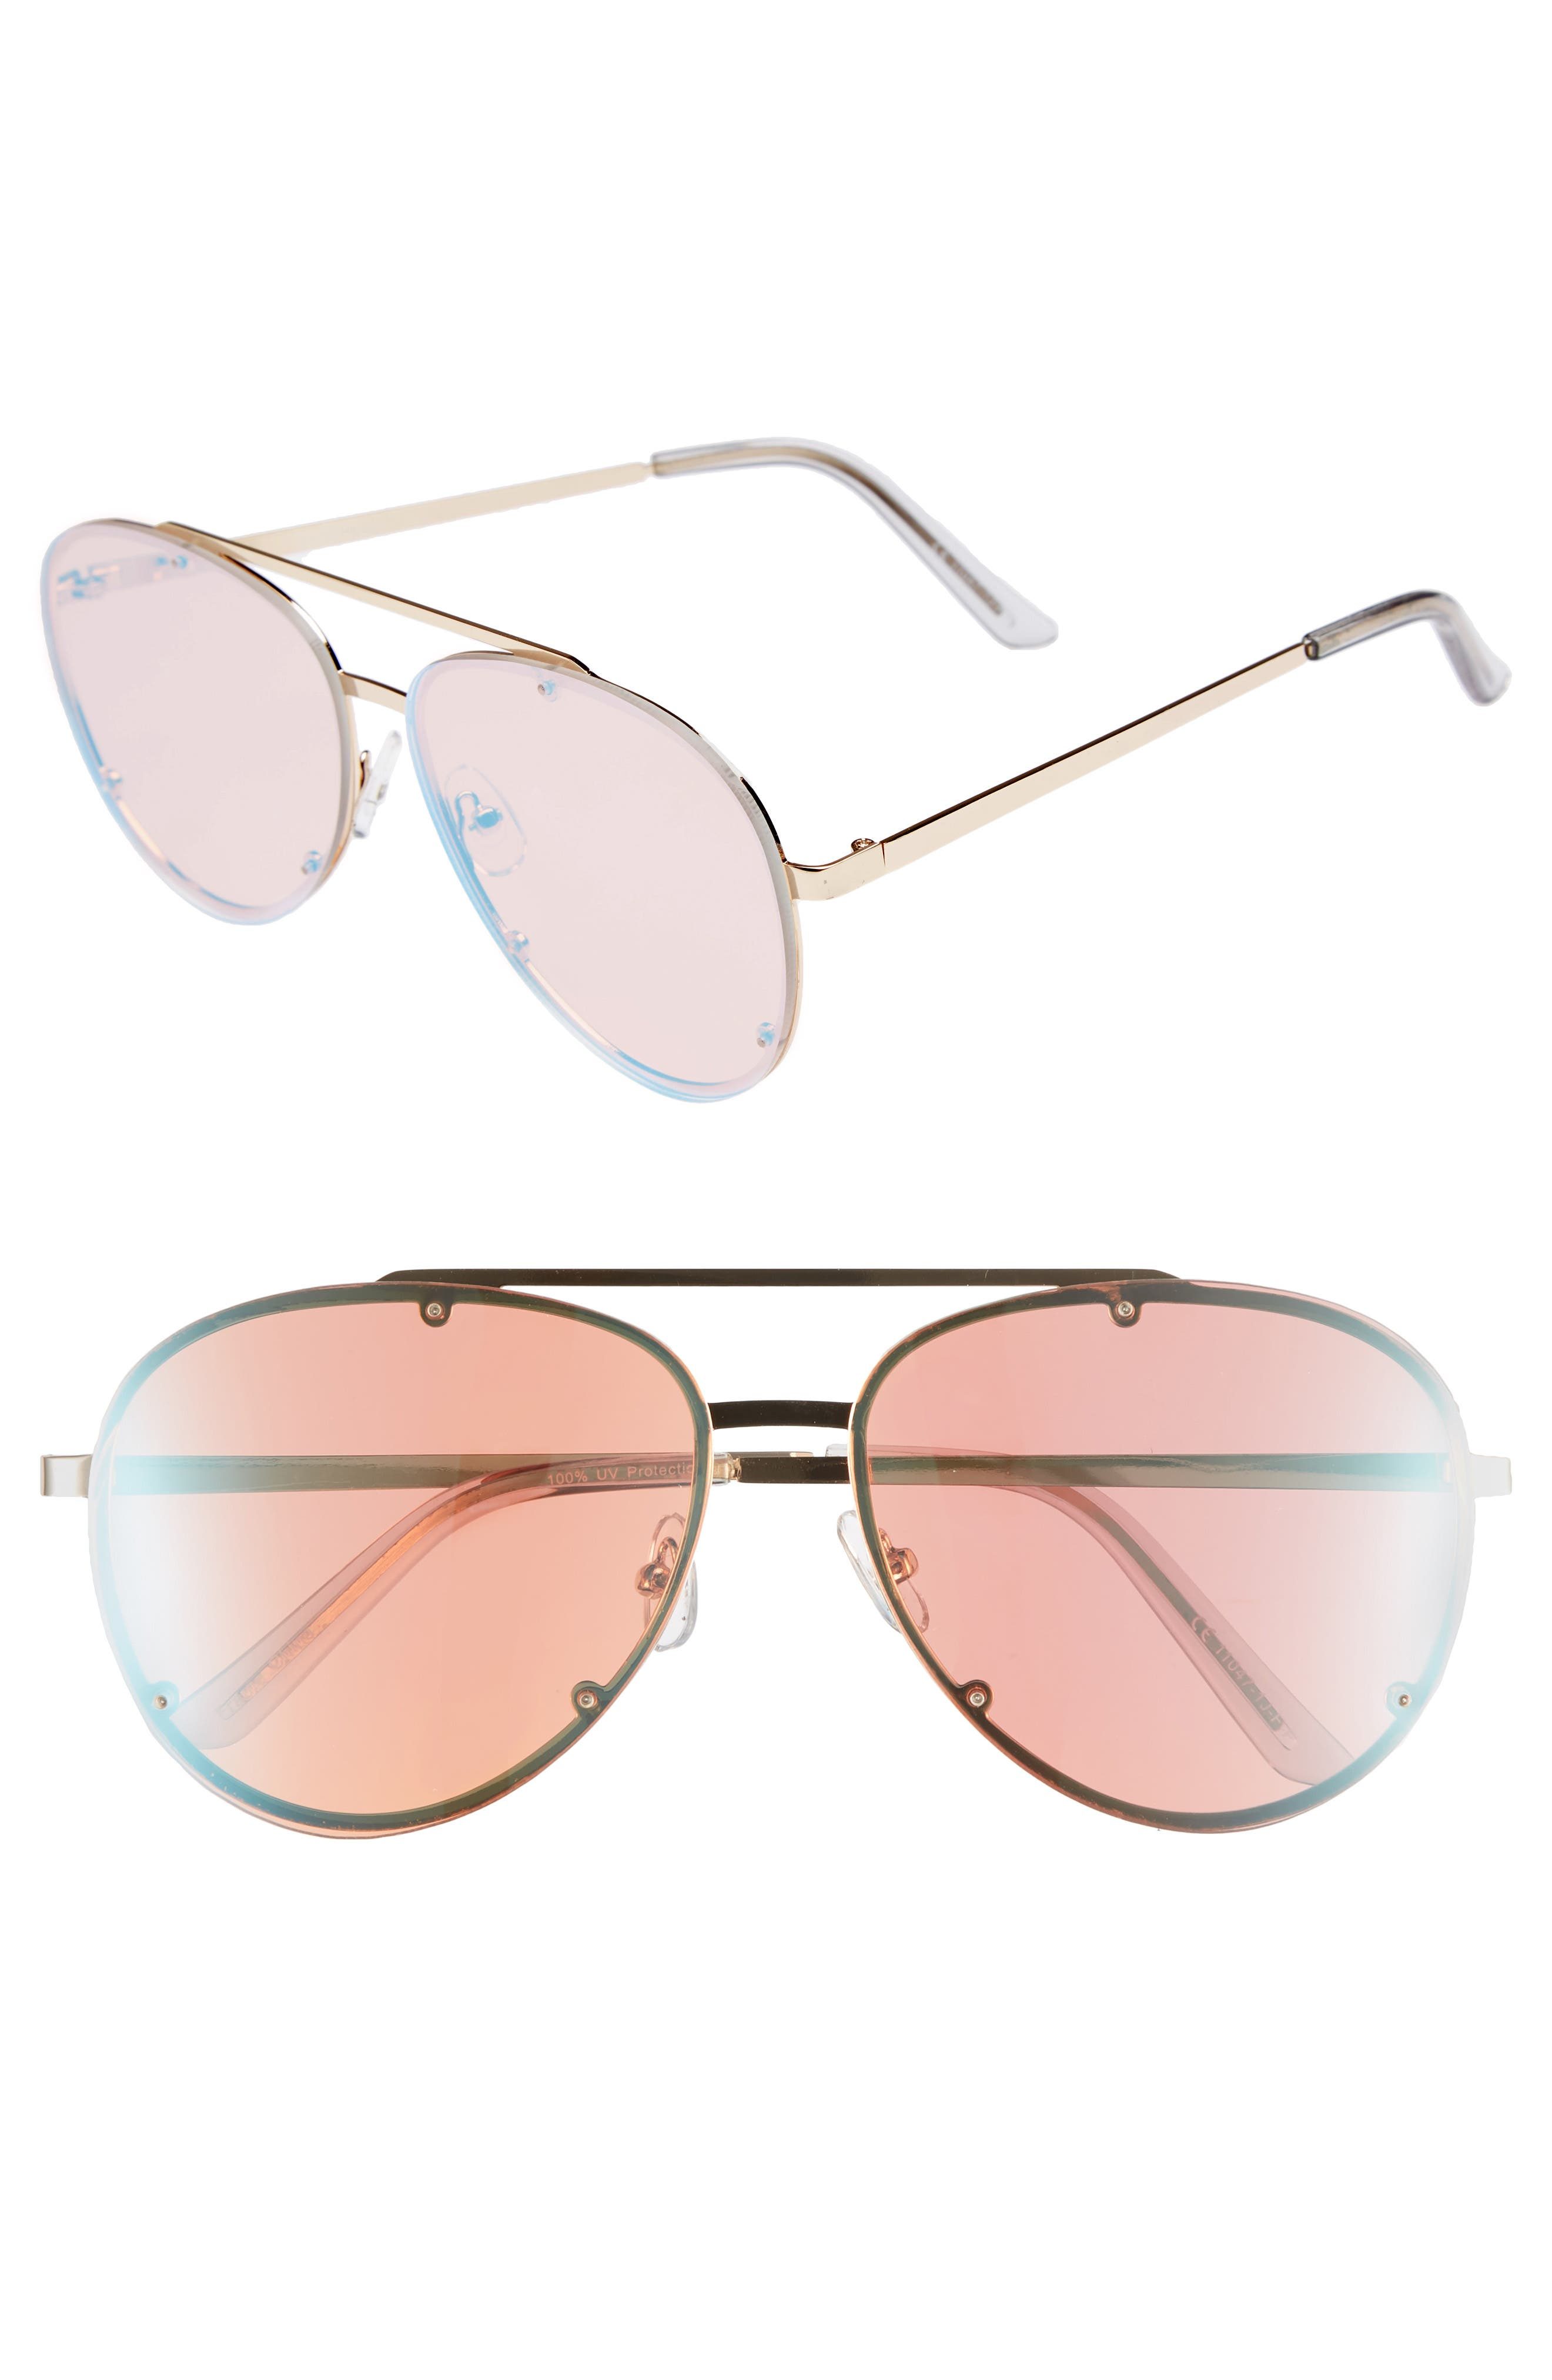 59mm Aviator Sunglasses,                             Main thumbnail 1, color,                             Multi